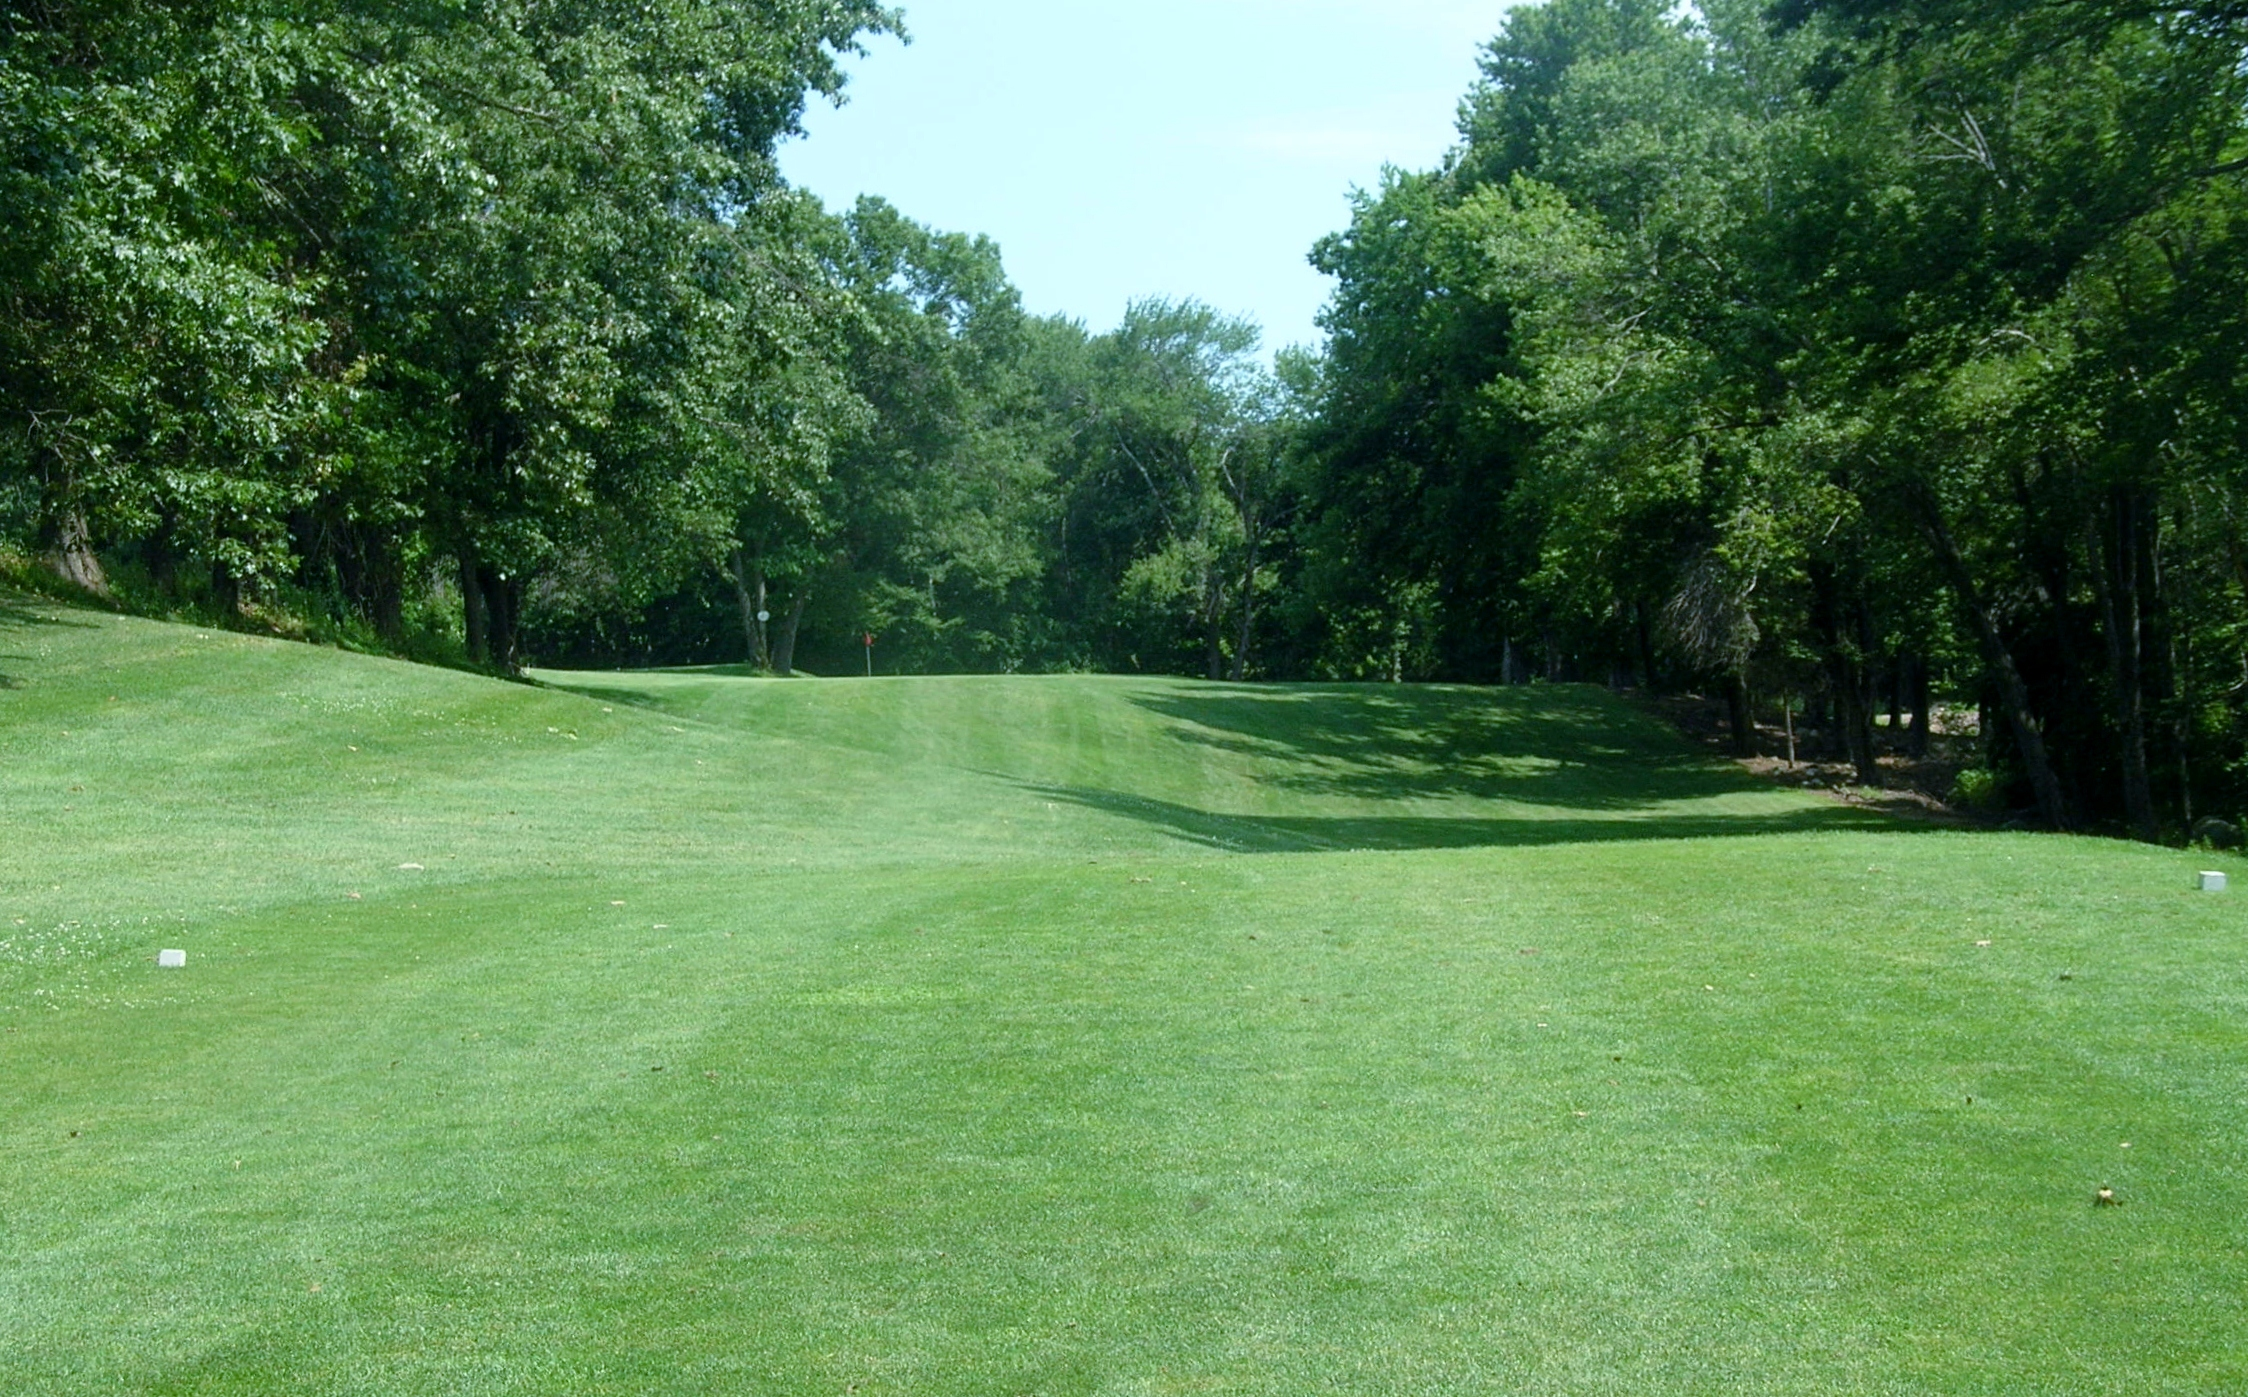 Hole 6, Par 3, 170 yards